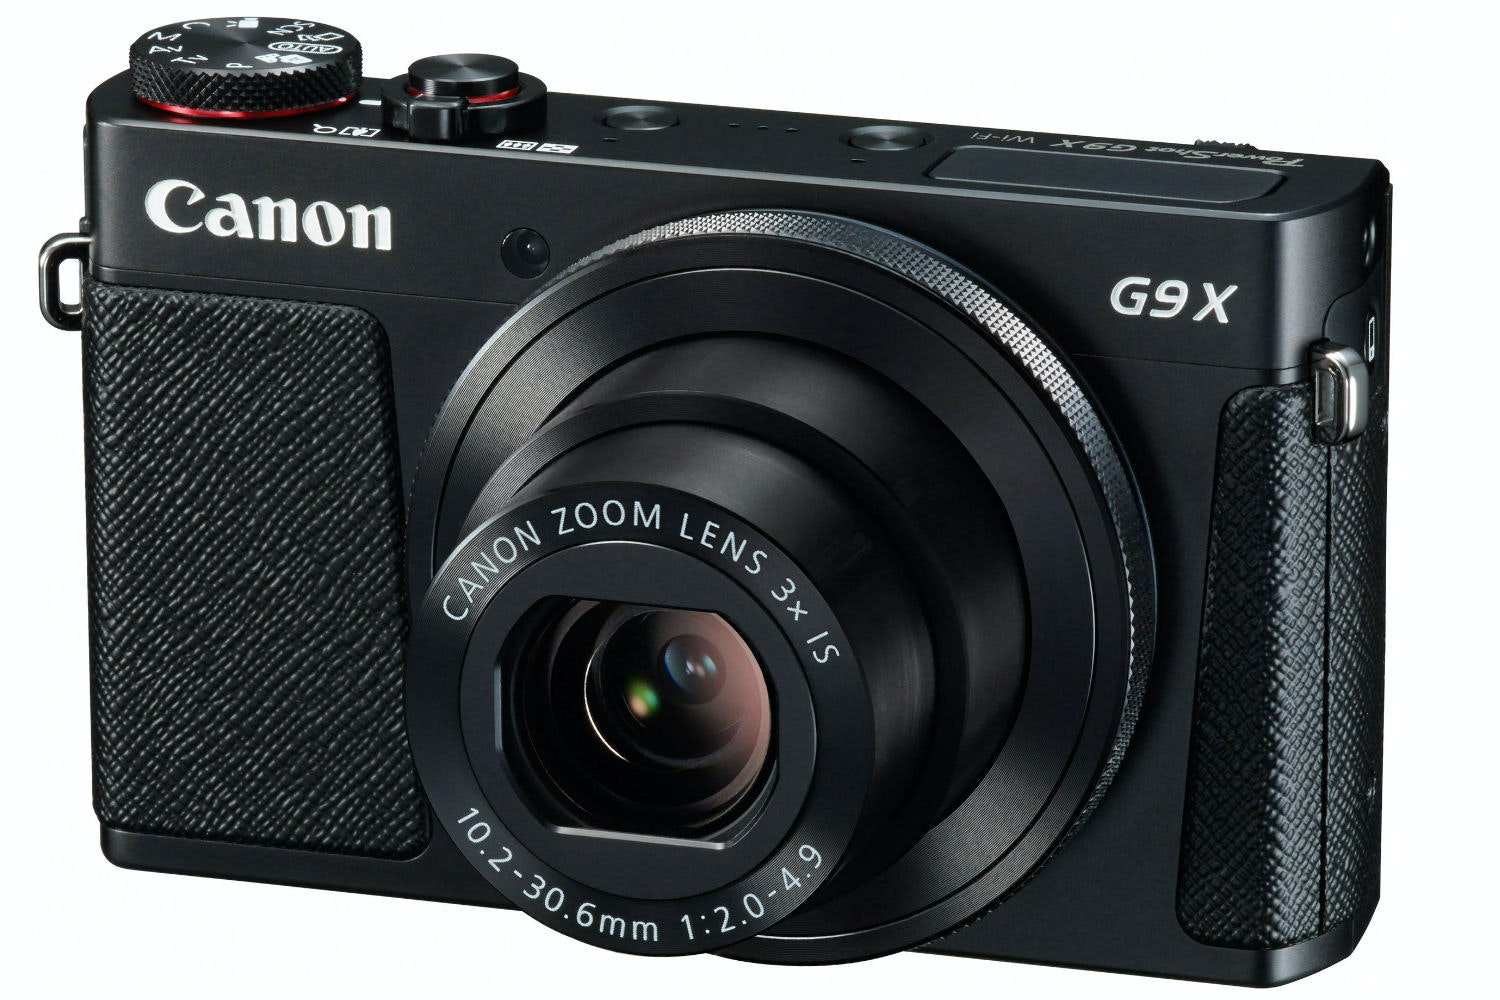 Canon Powershot G9 X Digital Camera | Black